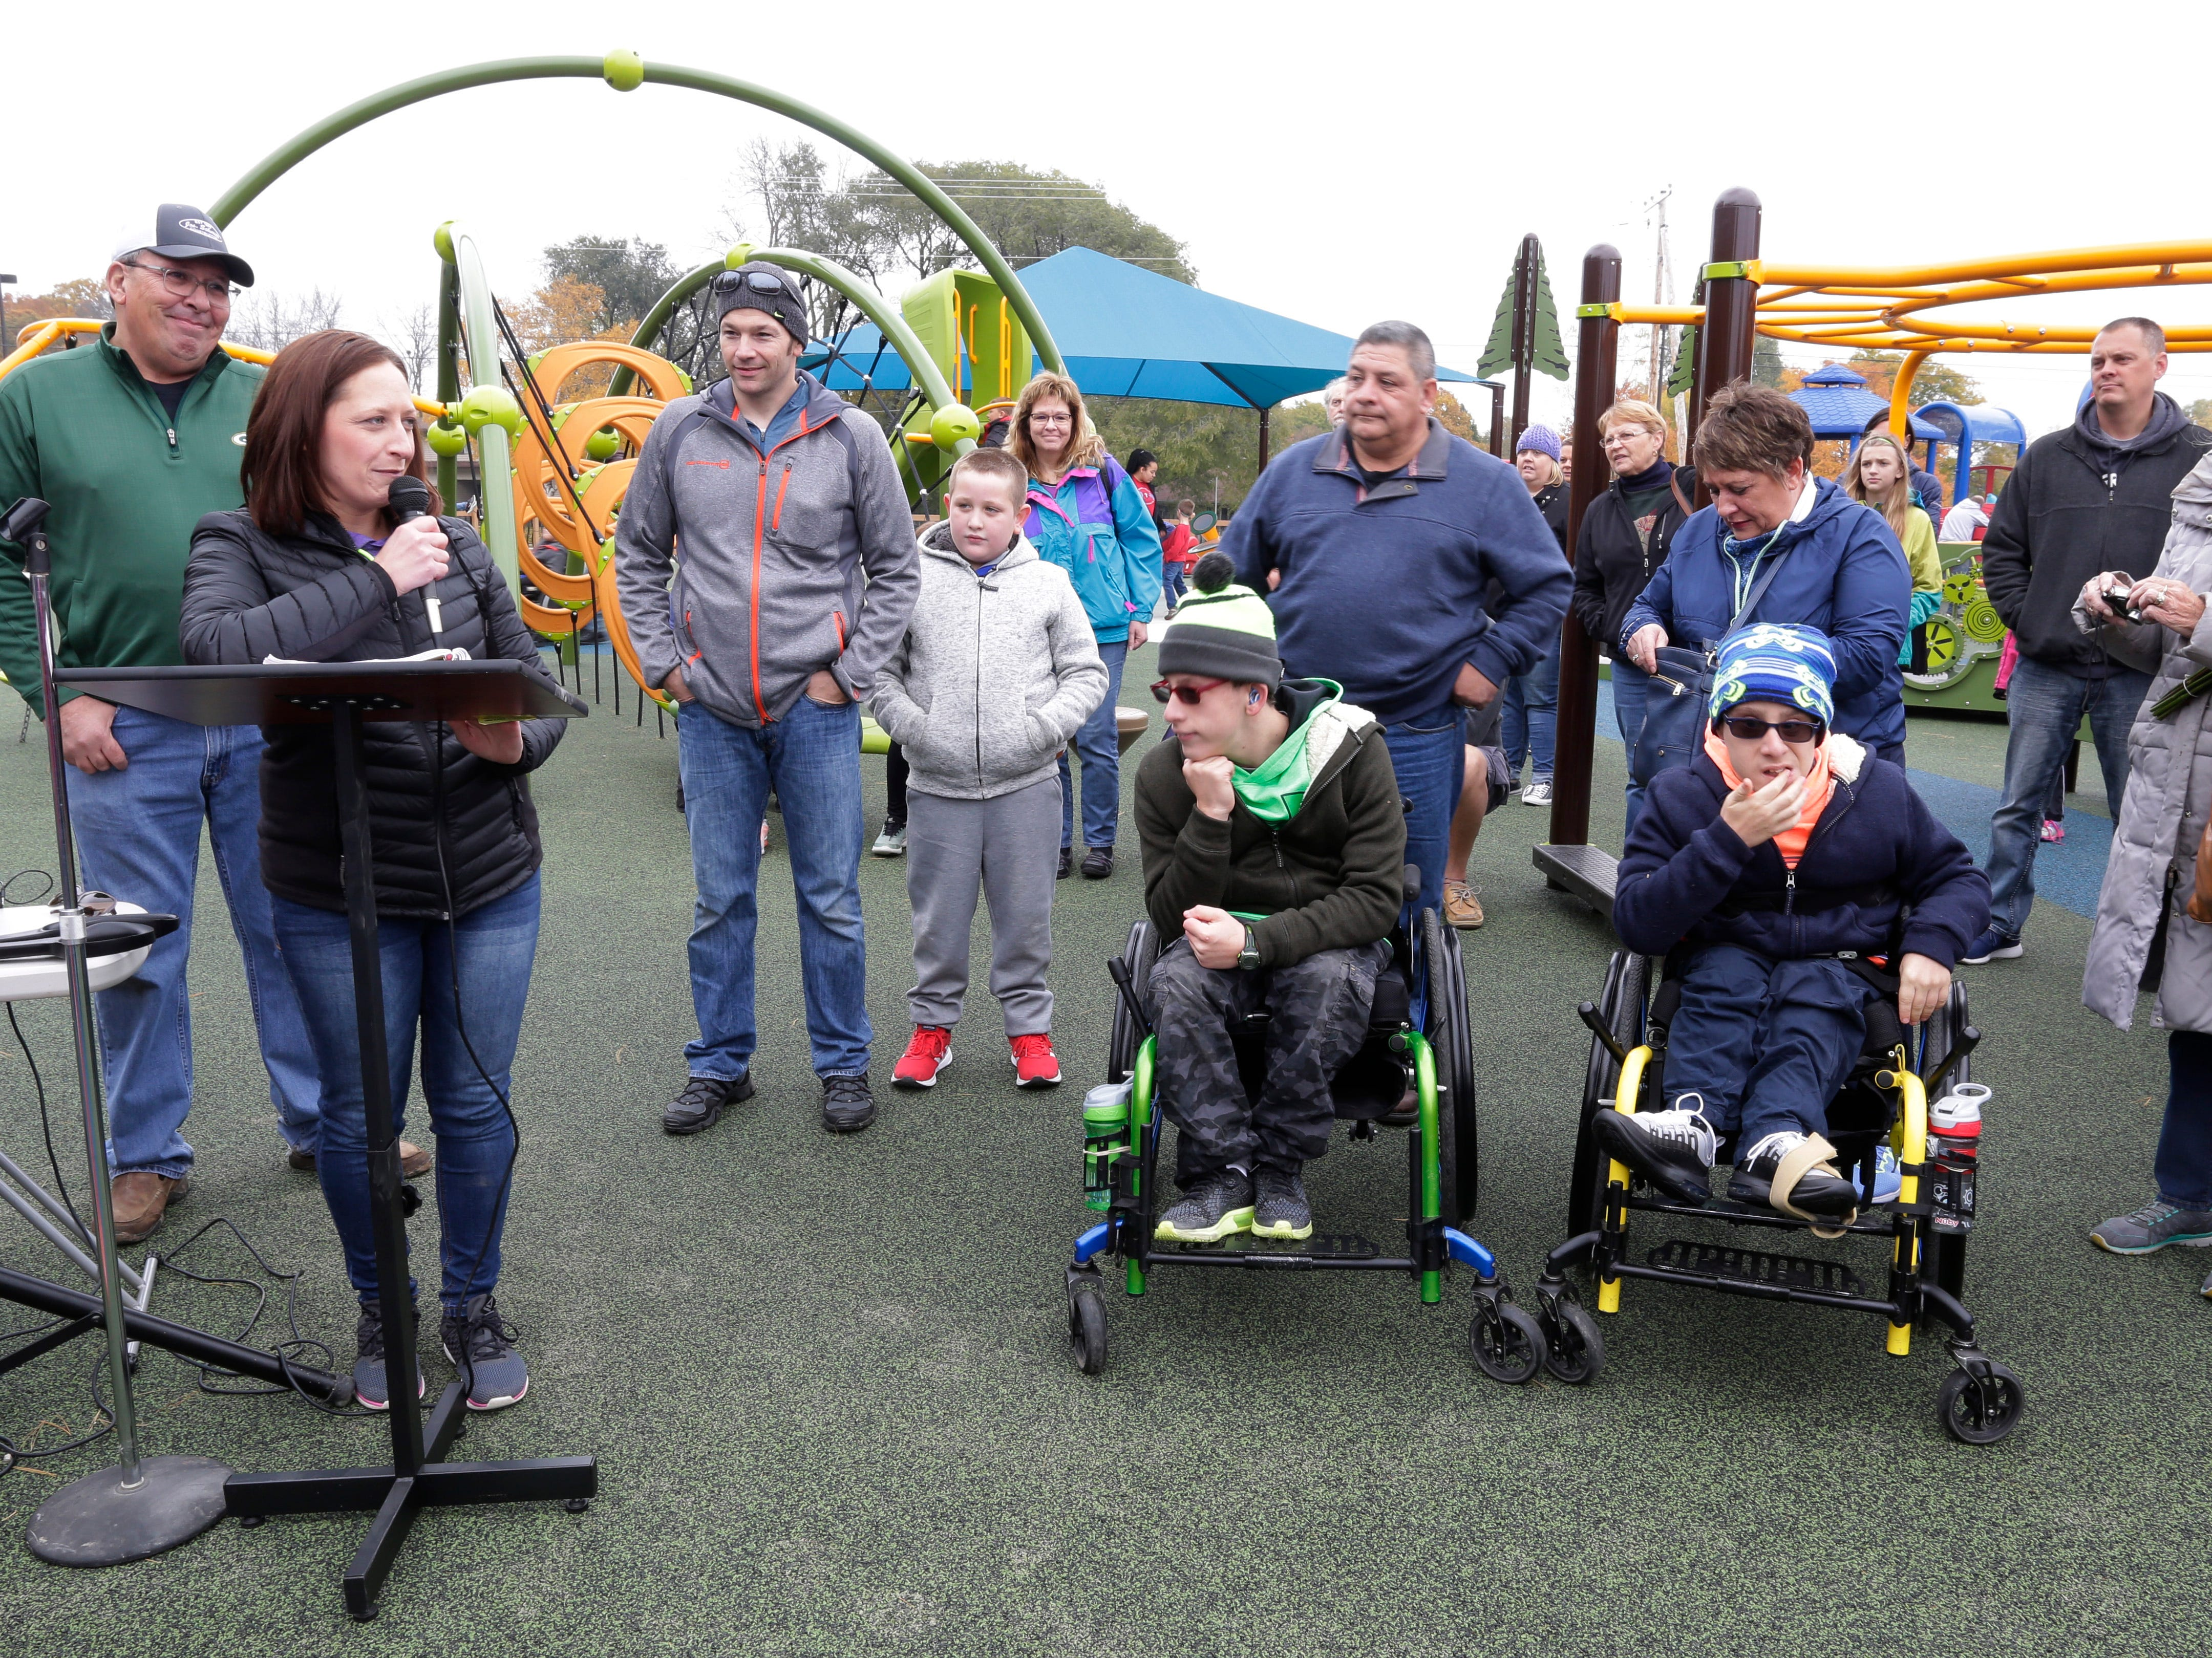 Angie Shaw, left, at podium, spoke of her appreciation for Sheboygan in making her dream of the Shaw Family Playground become reality, Saturday, September 27, 2018, in Sheboygan, Wis. The playground is accessible for children of all physical abilities.